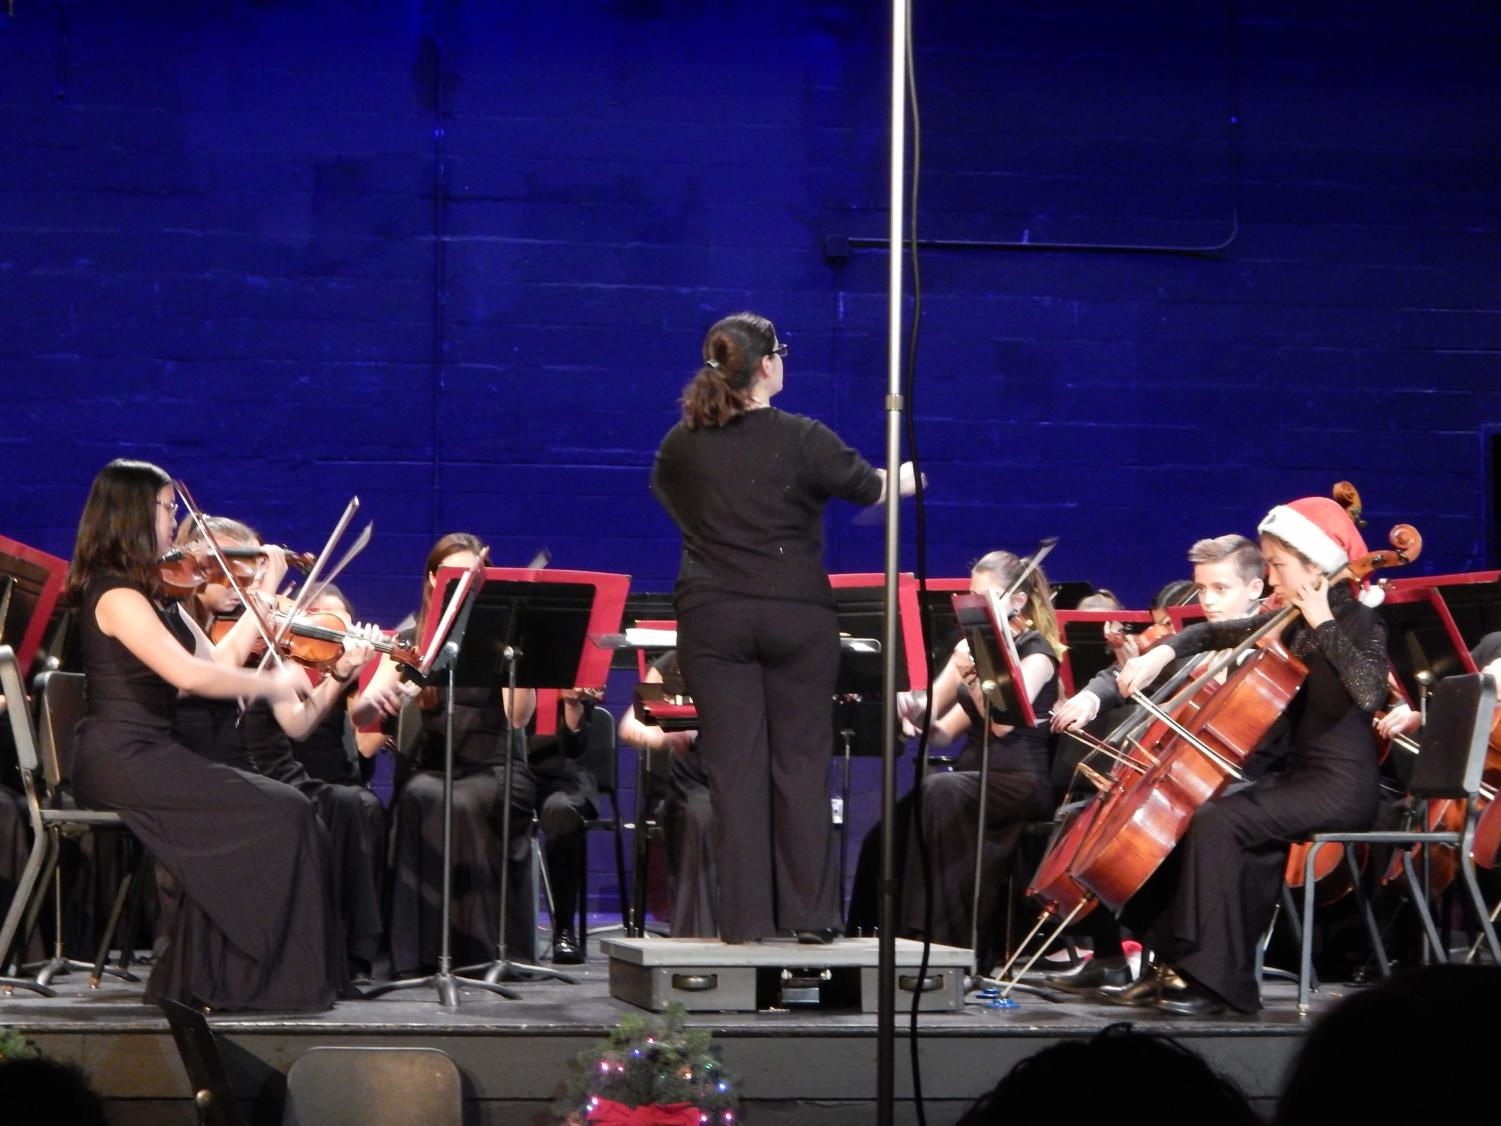 Sinfonia Orchestra proudly plays